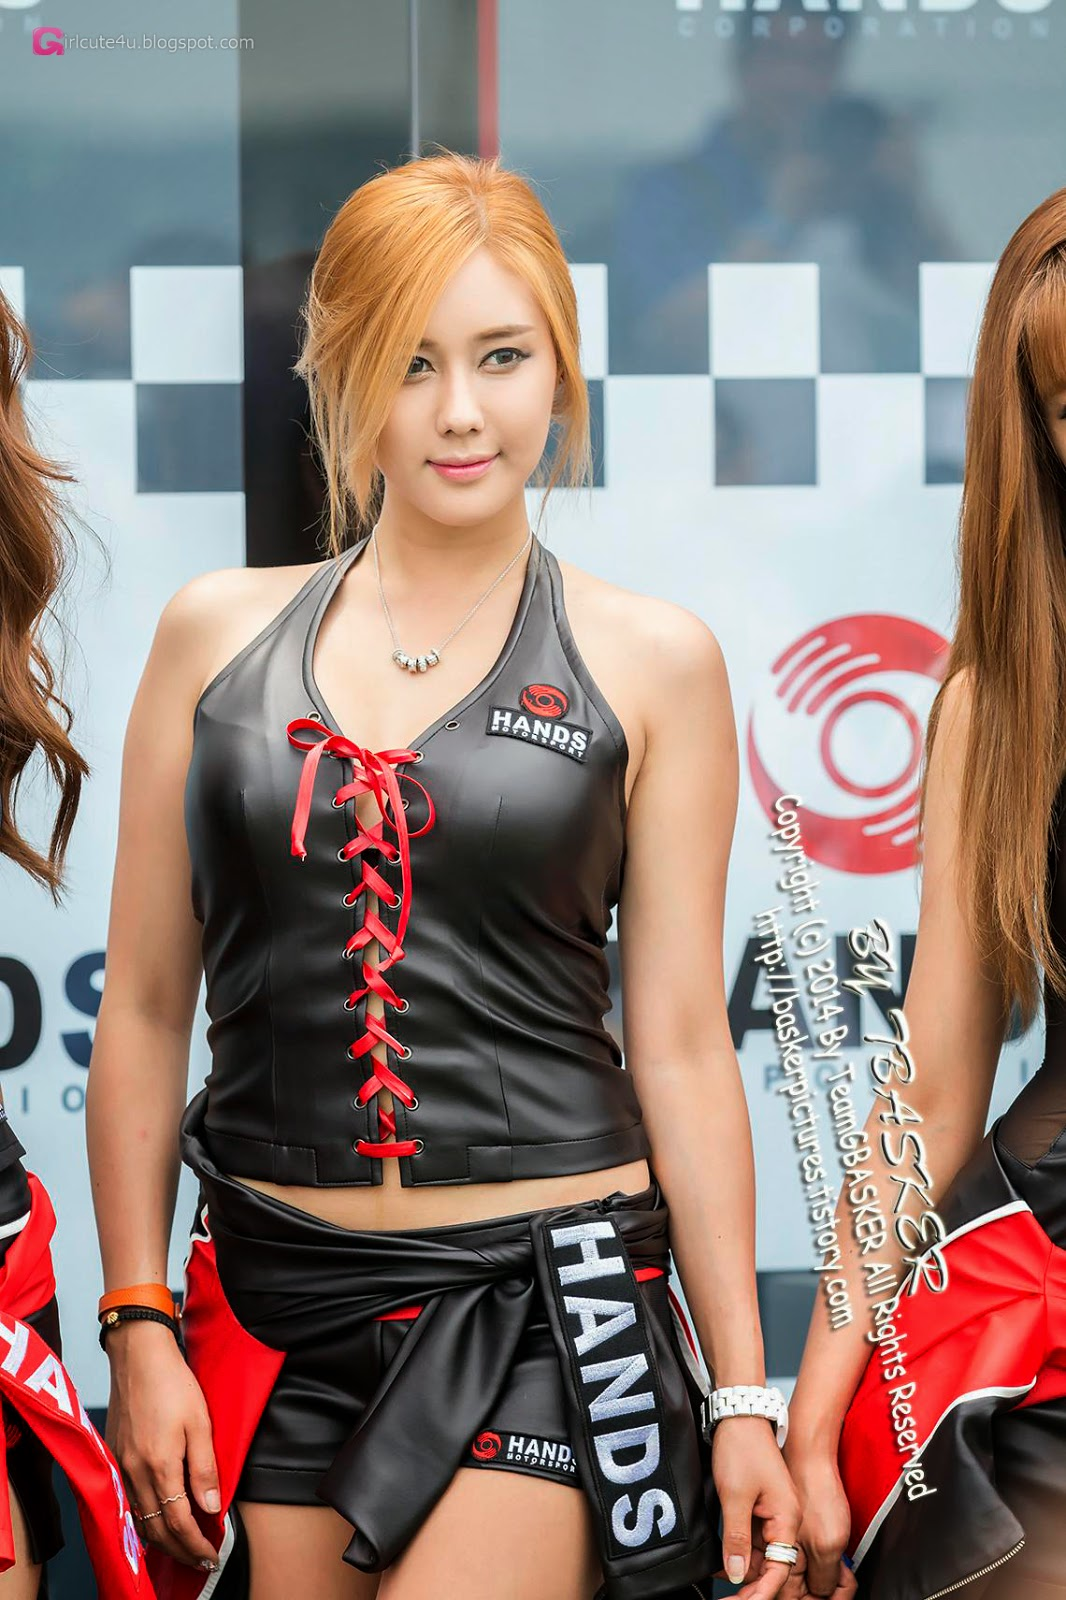 4 Kim Ha Yul - Korea Speed Festival 2014 - very cute asian girl-girlcute4u.blogspot.com